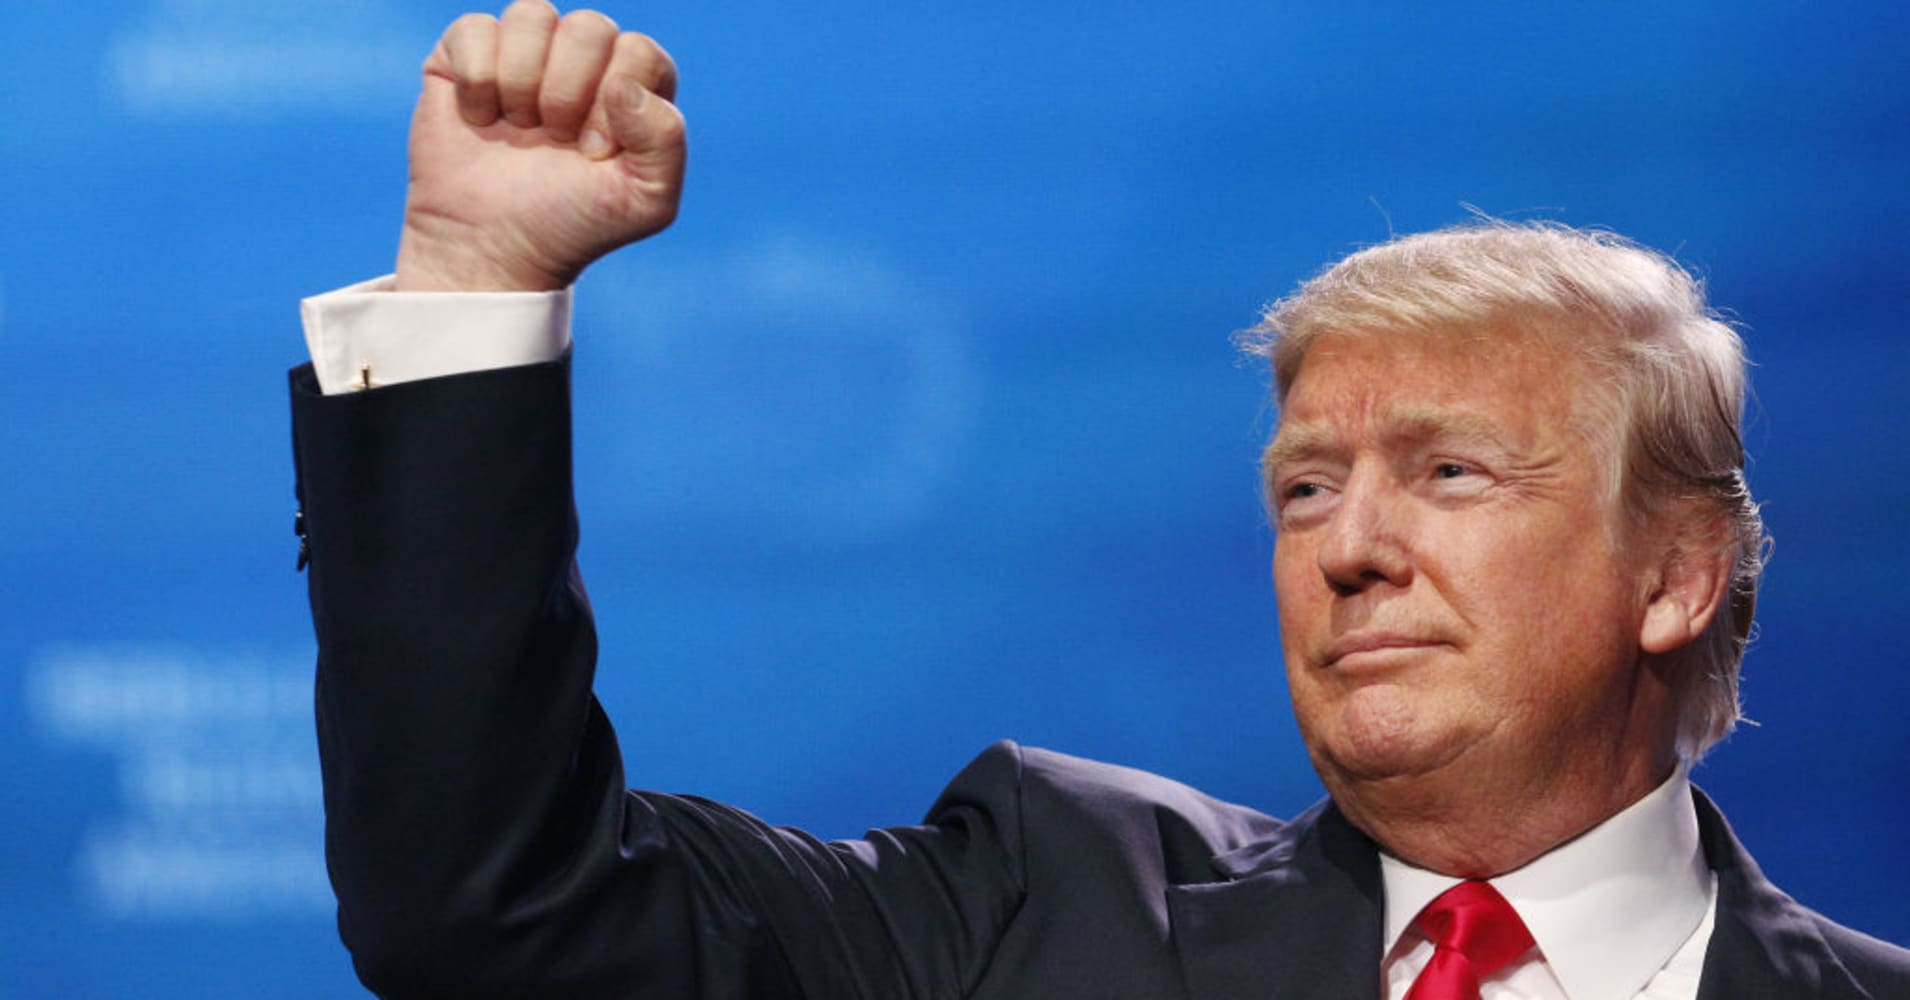 Stock market's value under Trump has grown by $6.9 trillion to $30.6 trillion